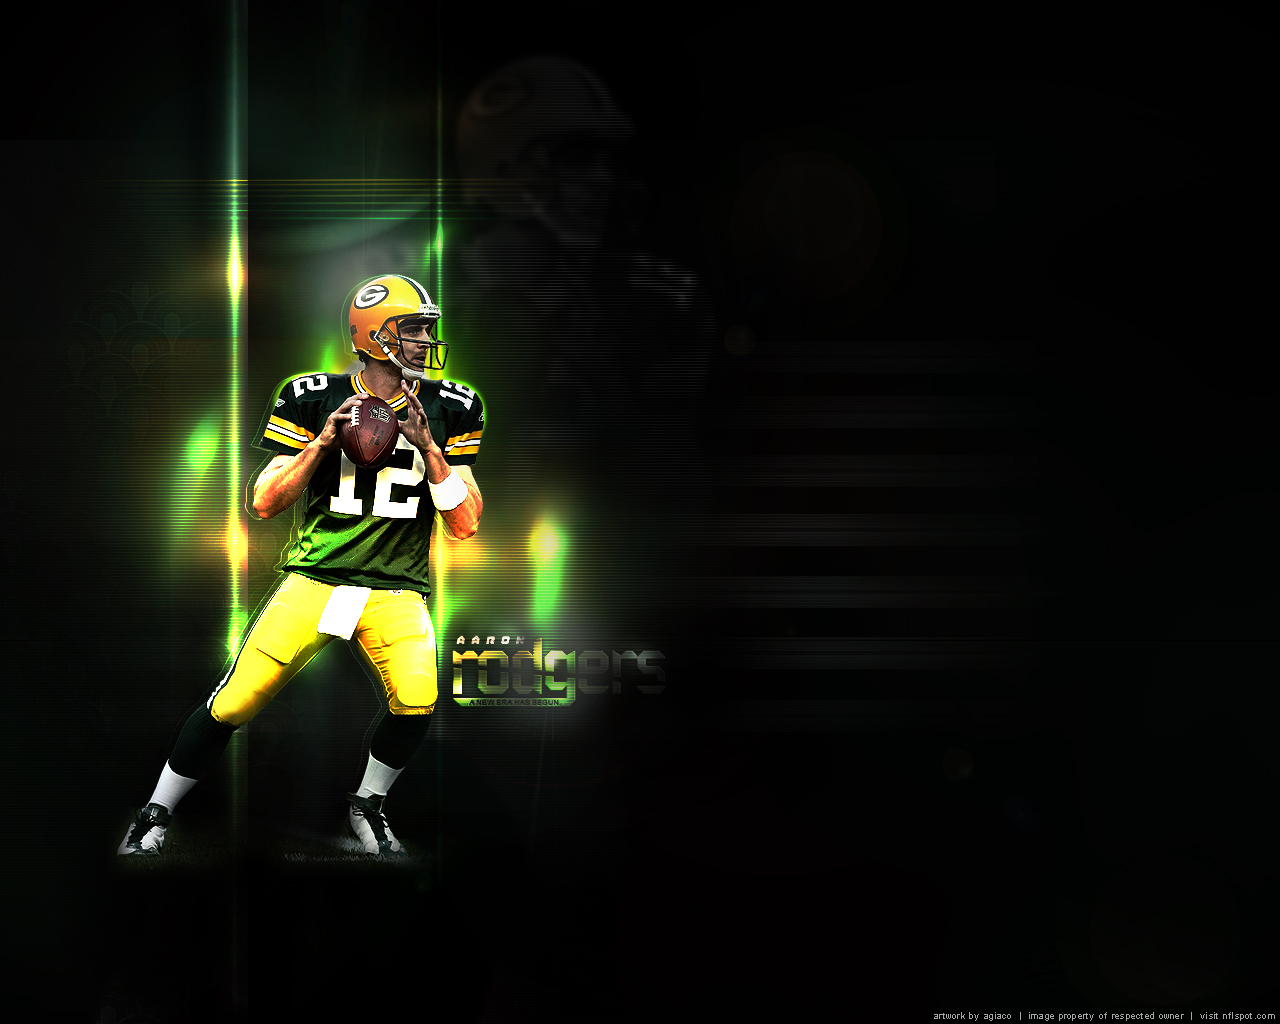 Green bay packers images aaron rodgers hd wallpaper and background green bay packers images aaron rodgers hd wallpaper and background photos voltagebd Image collections